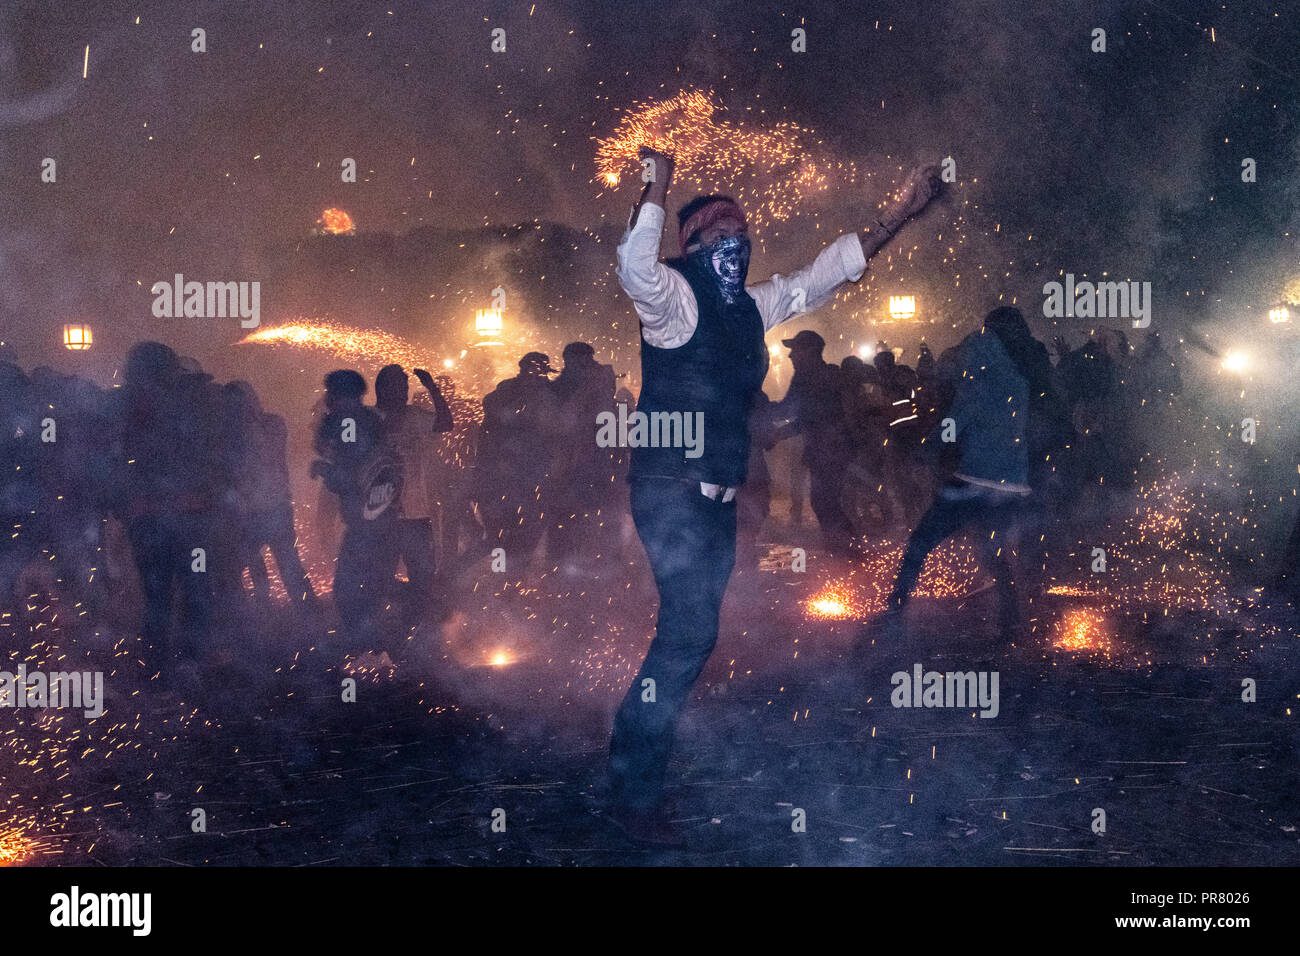 San Miguel de Allende, Mexico. 29th Sept 2018. A Mexican man wearing a protective mask dances during a barrage of sky rockets during the Alborada festival September 29, 2018 in San Miguel de Allende, Mexico. The unusual festival celebrates the cities patron saint with a two hour-long firework battle at 4am representing the struggle between Saint Michael and Lucifer. Credit: Planetpix/Alamy Live News - Stock Image